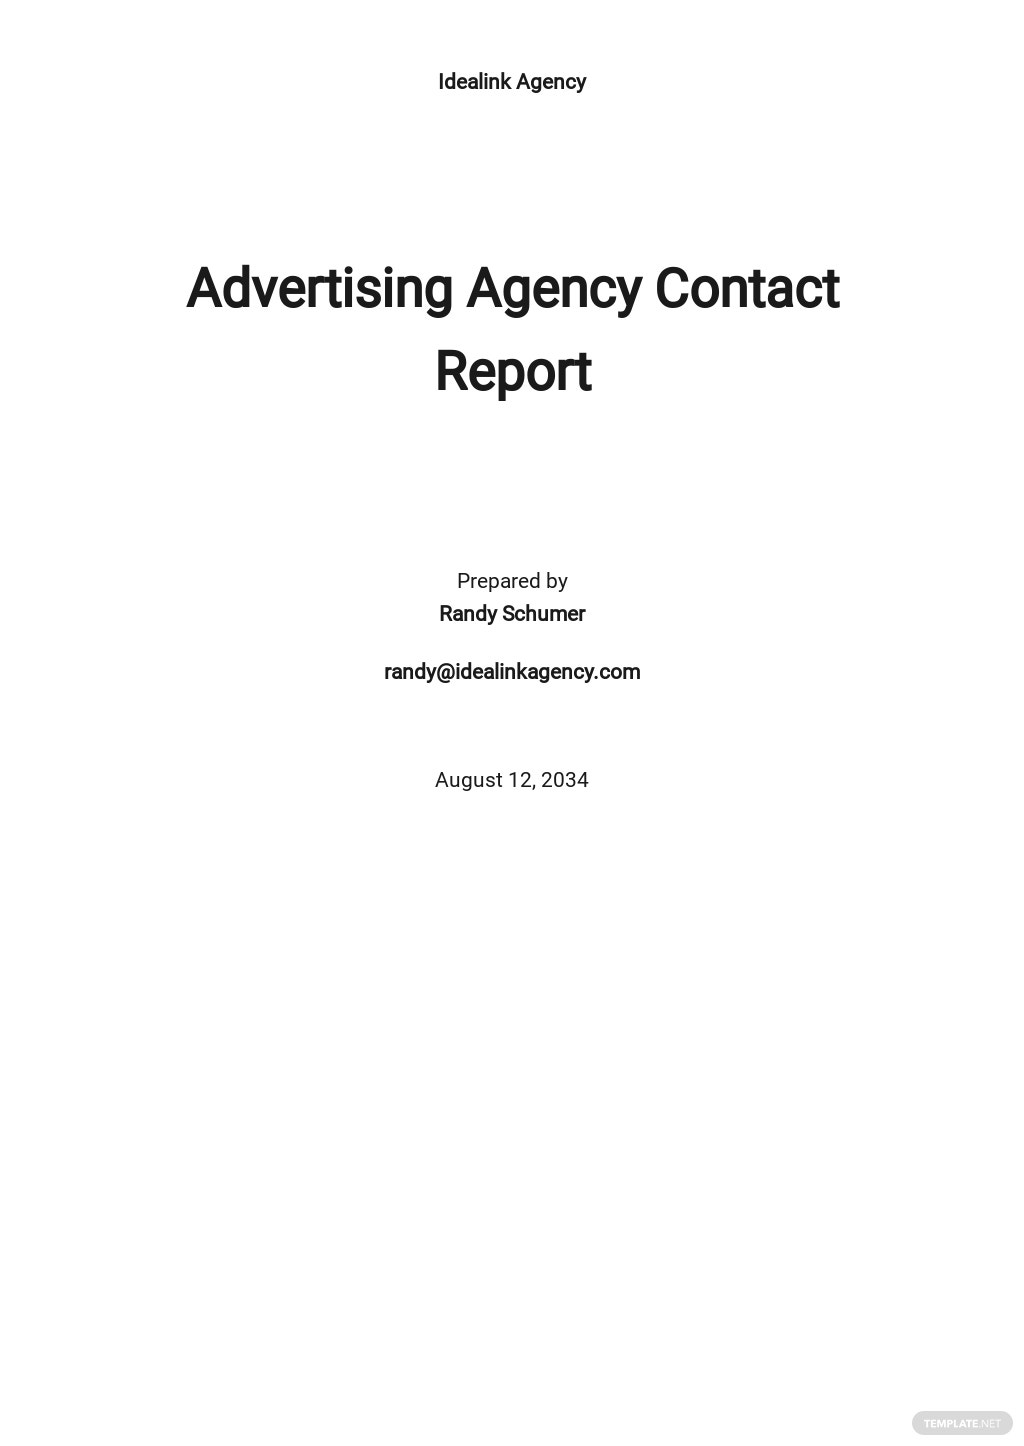 Advertising Agency Contact Report Template.jpe